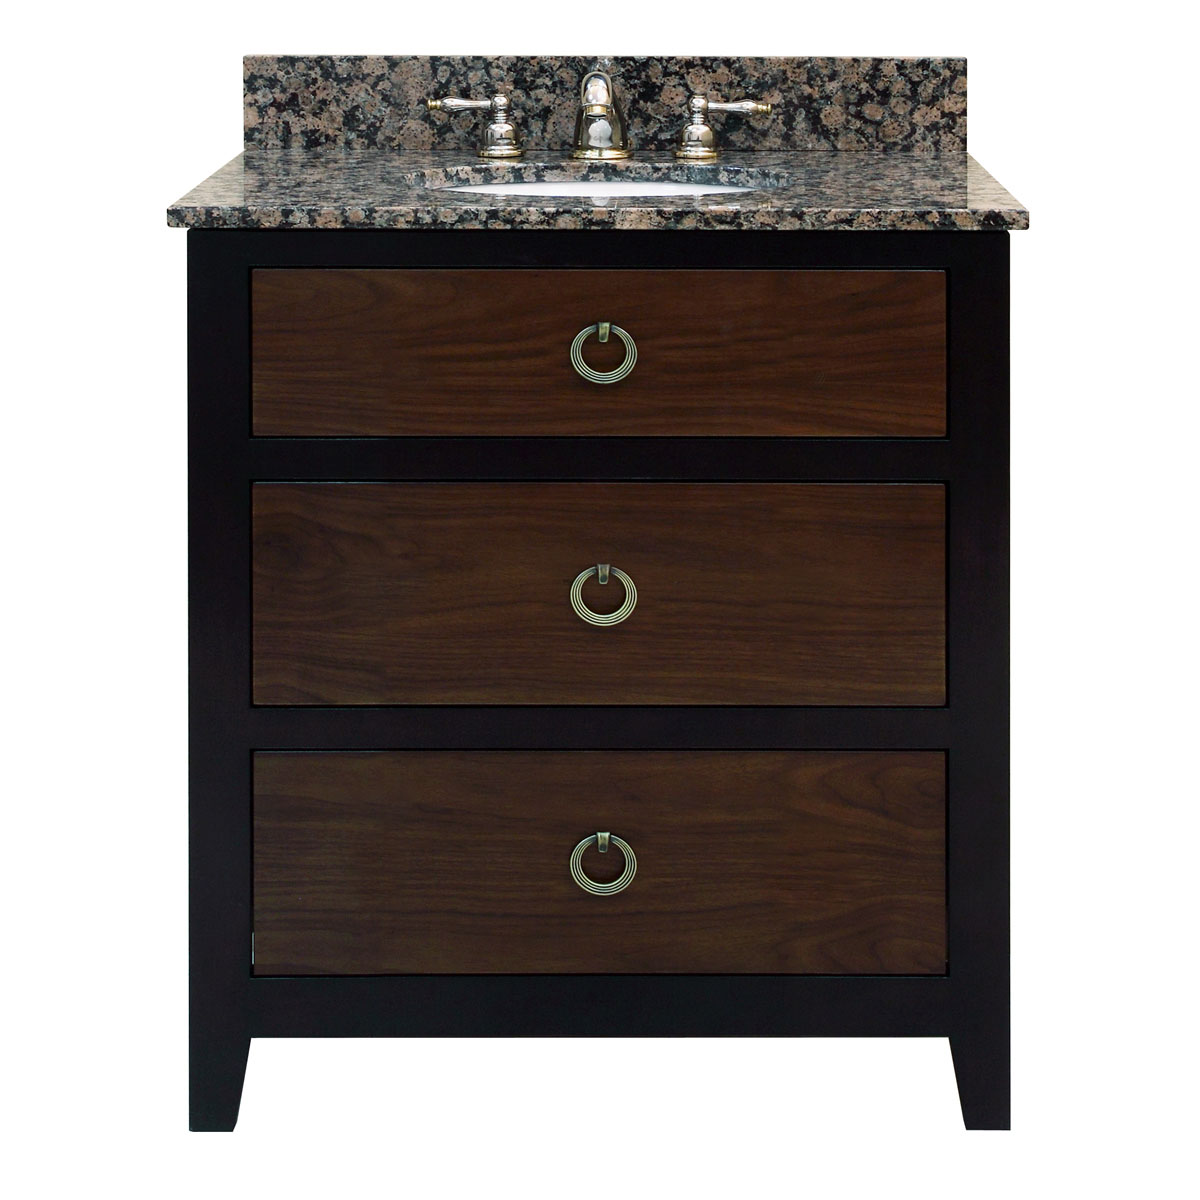 "30"" Urban Loft Single Vanity - with optional top"